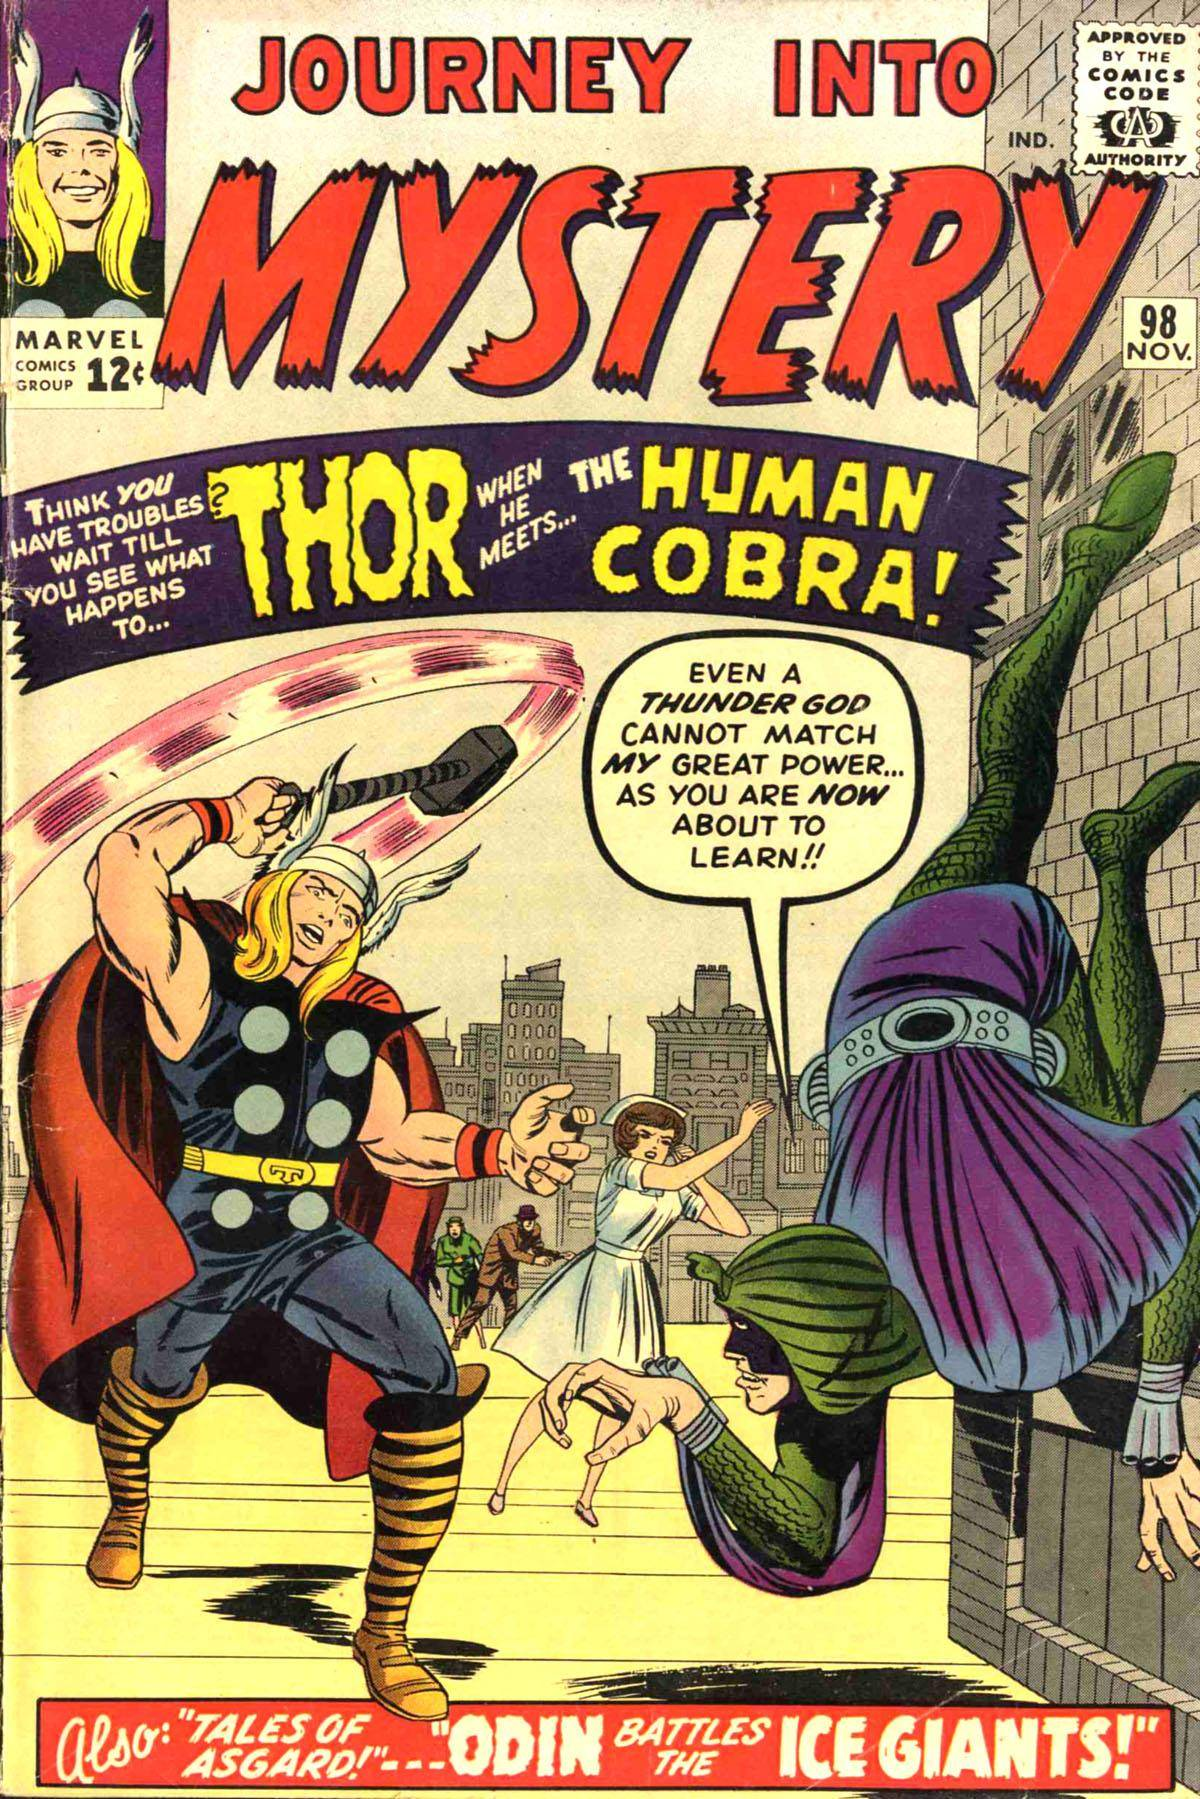 Thor 1963-11 Journey Into Mystery 098